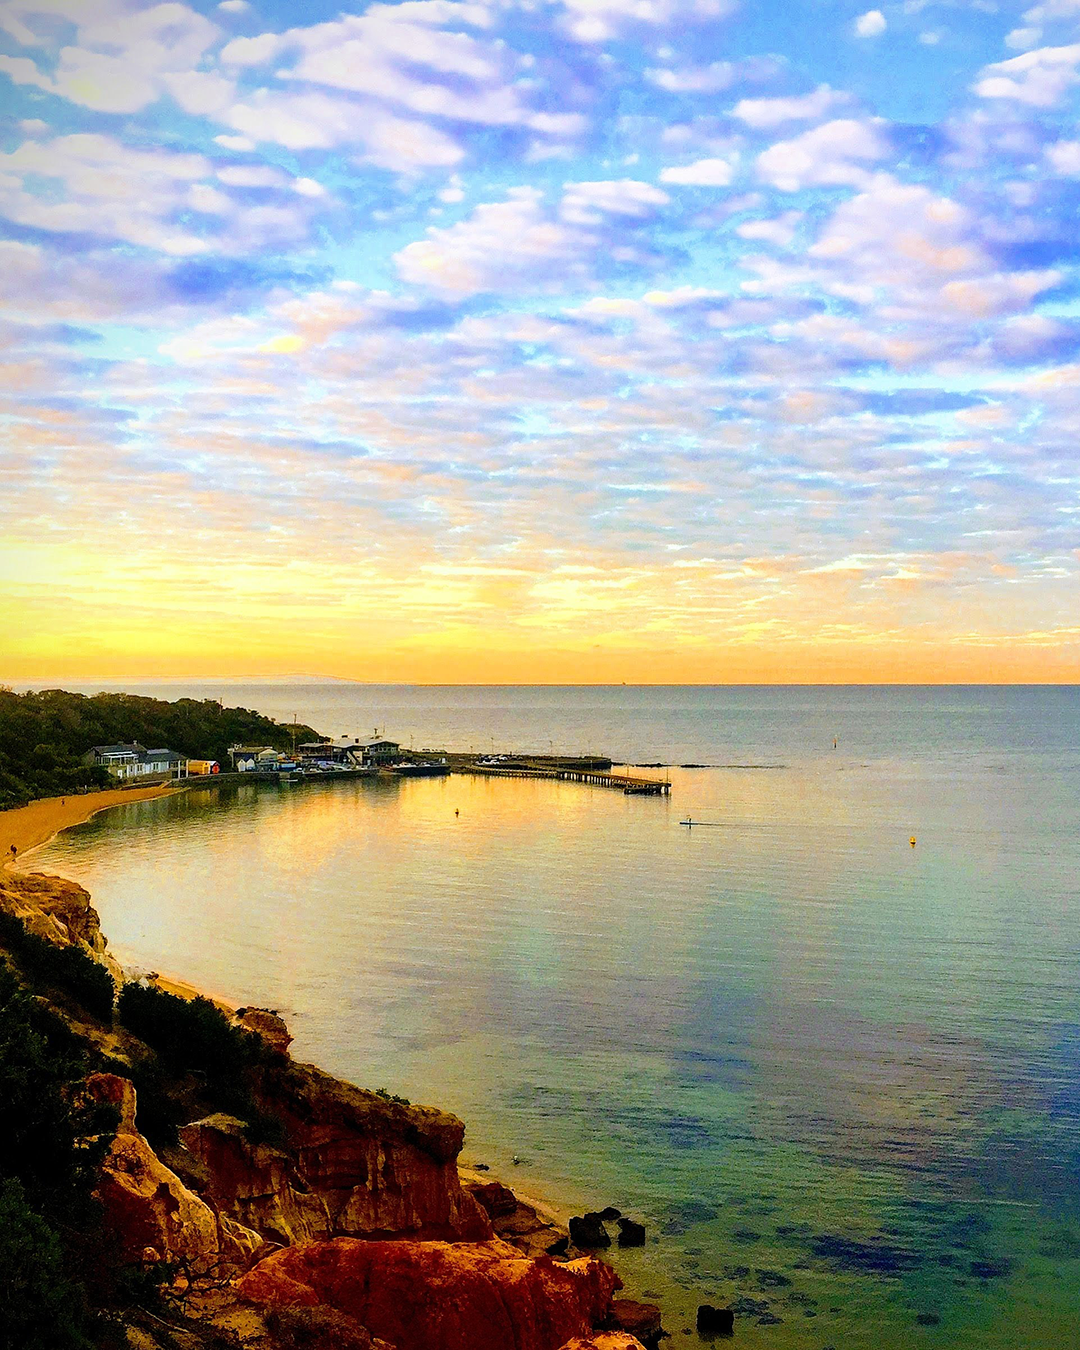 Red Bluff bay at sunset, with a dreamy sky, red cliff coastline and blue water.